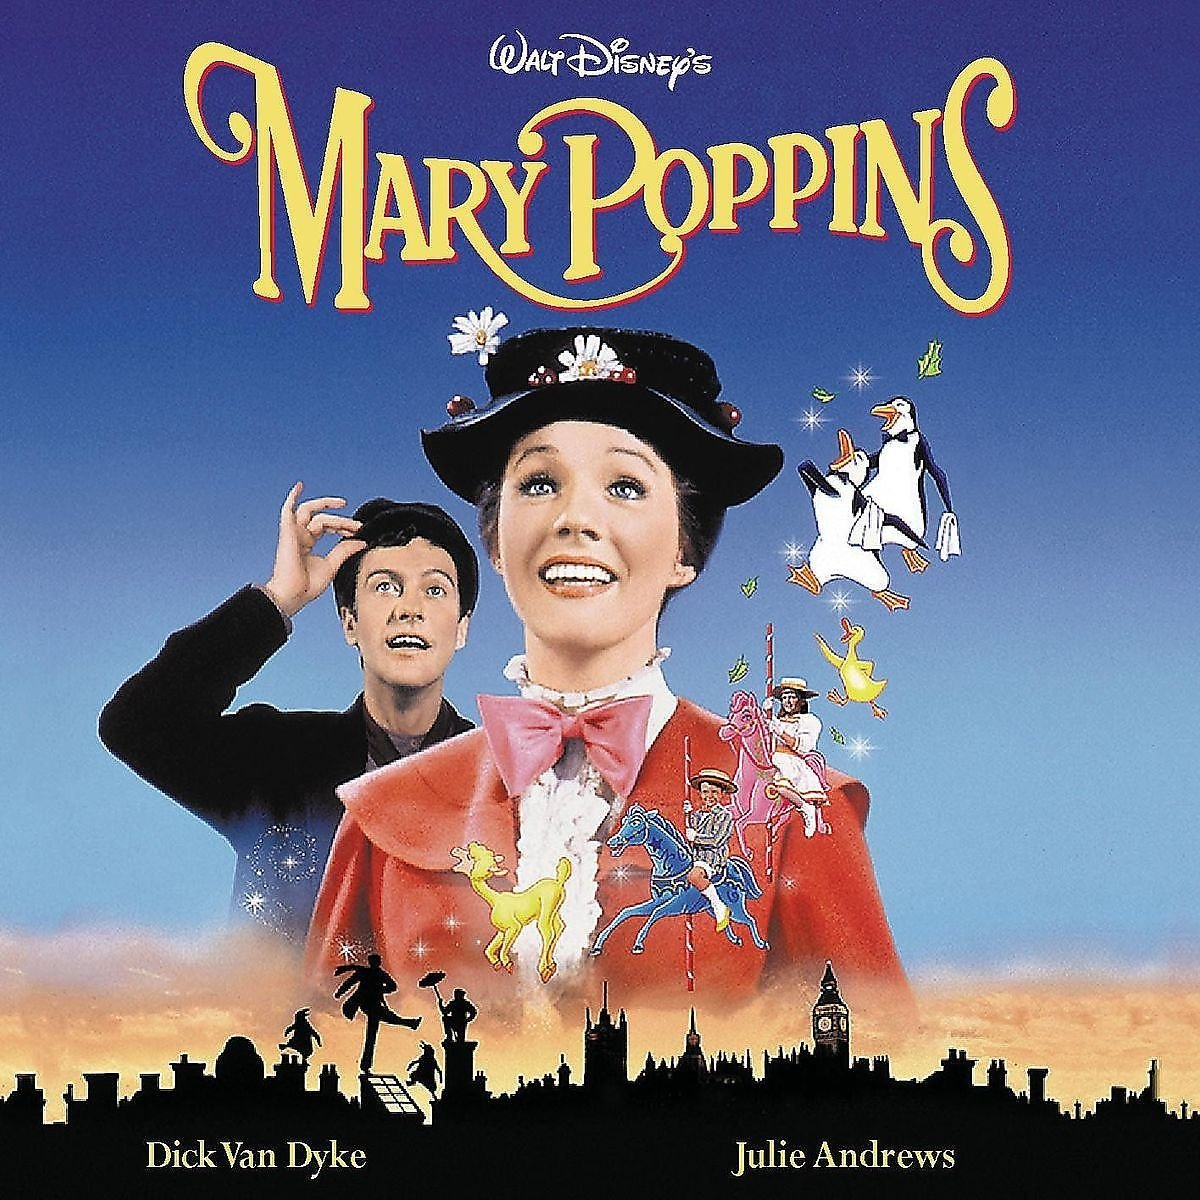 Mary Poppins by Disney Int'l